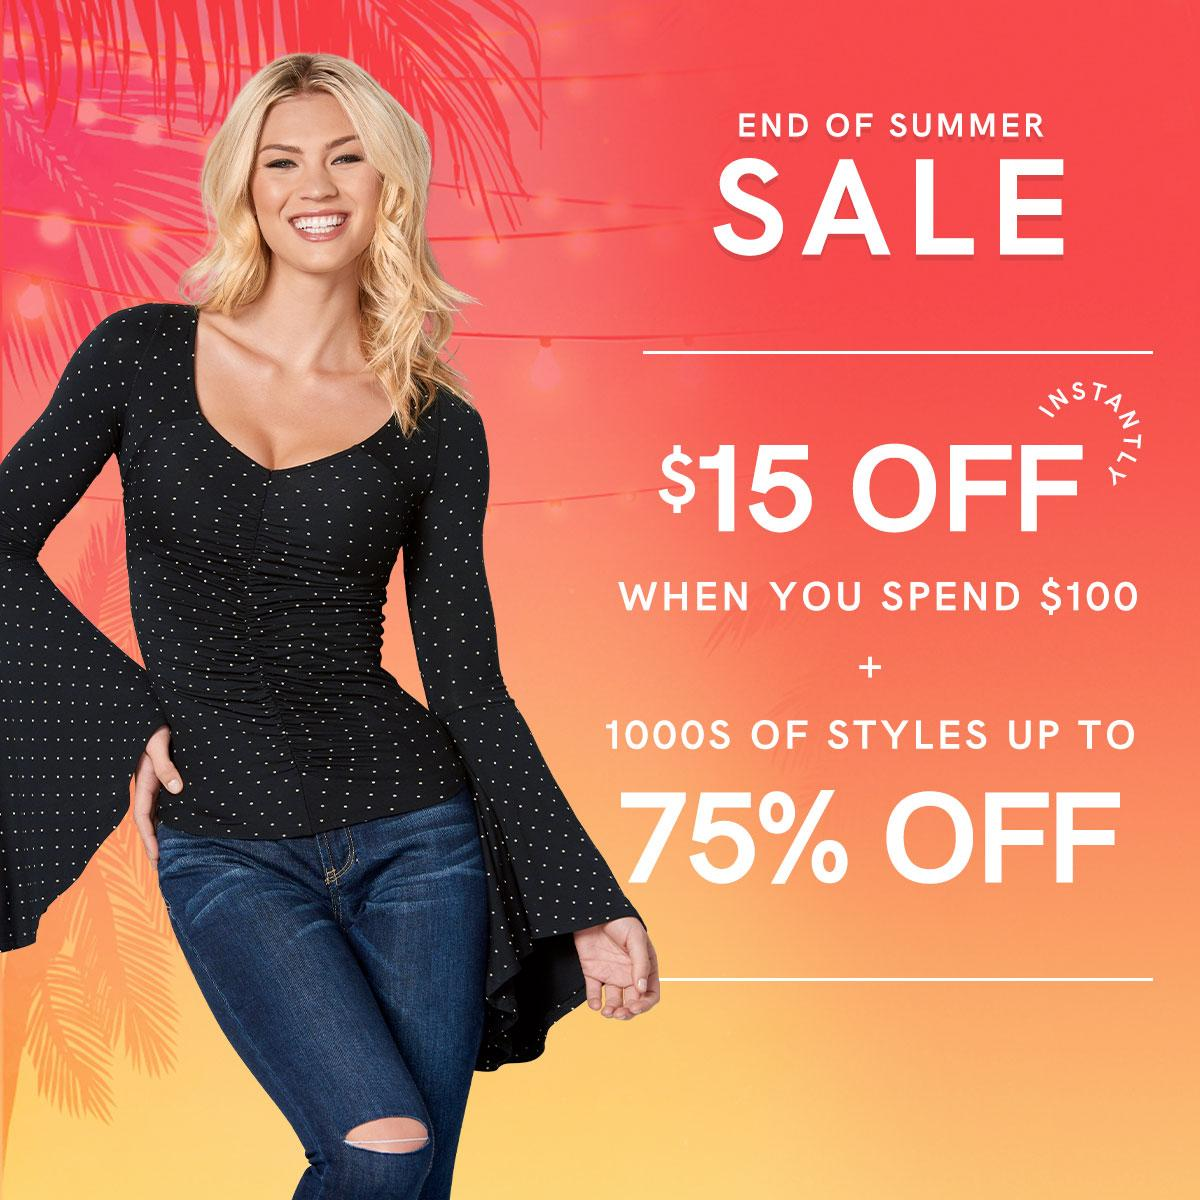 Goodbye summer, hello markdowns! Our annual End of Summer Sale is here. Get $15 off instantly when you spend $100 or more, plus shop the lowest prices of the season with savings up to 75%!  End of Summer Sale: https://t.co/lWzsbgQ3Gm https://t.co/I9NuxfV23S